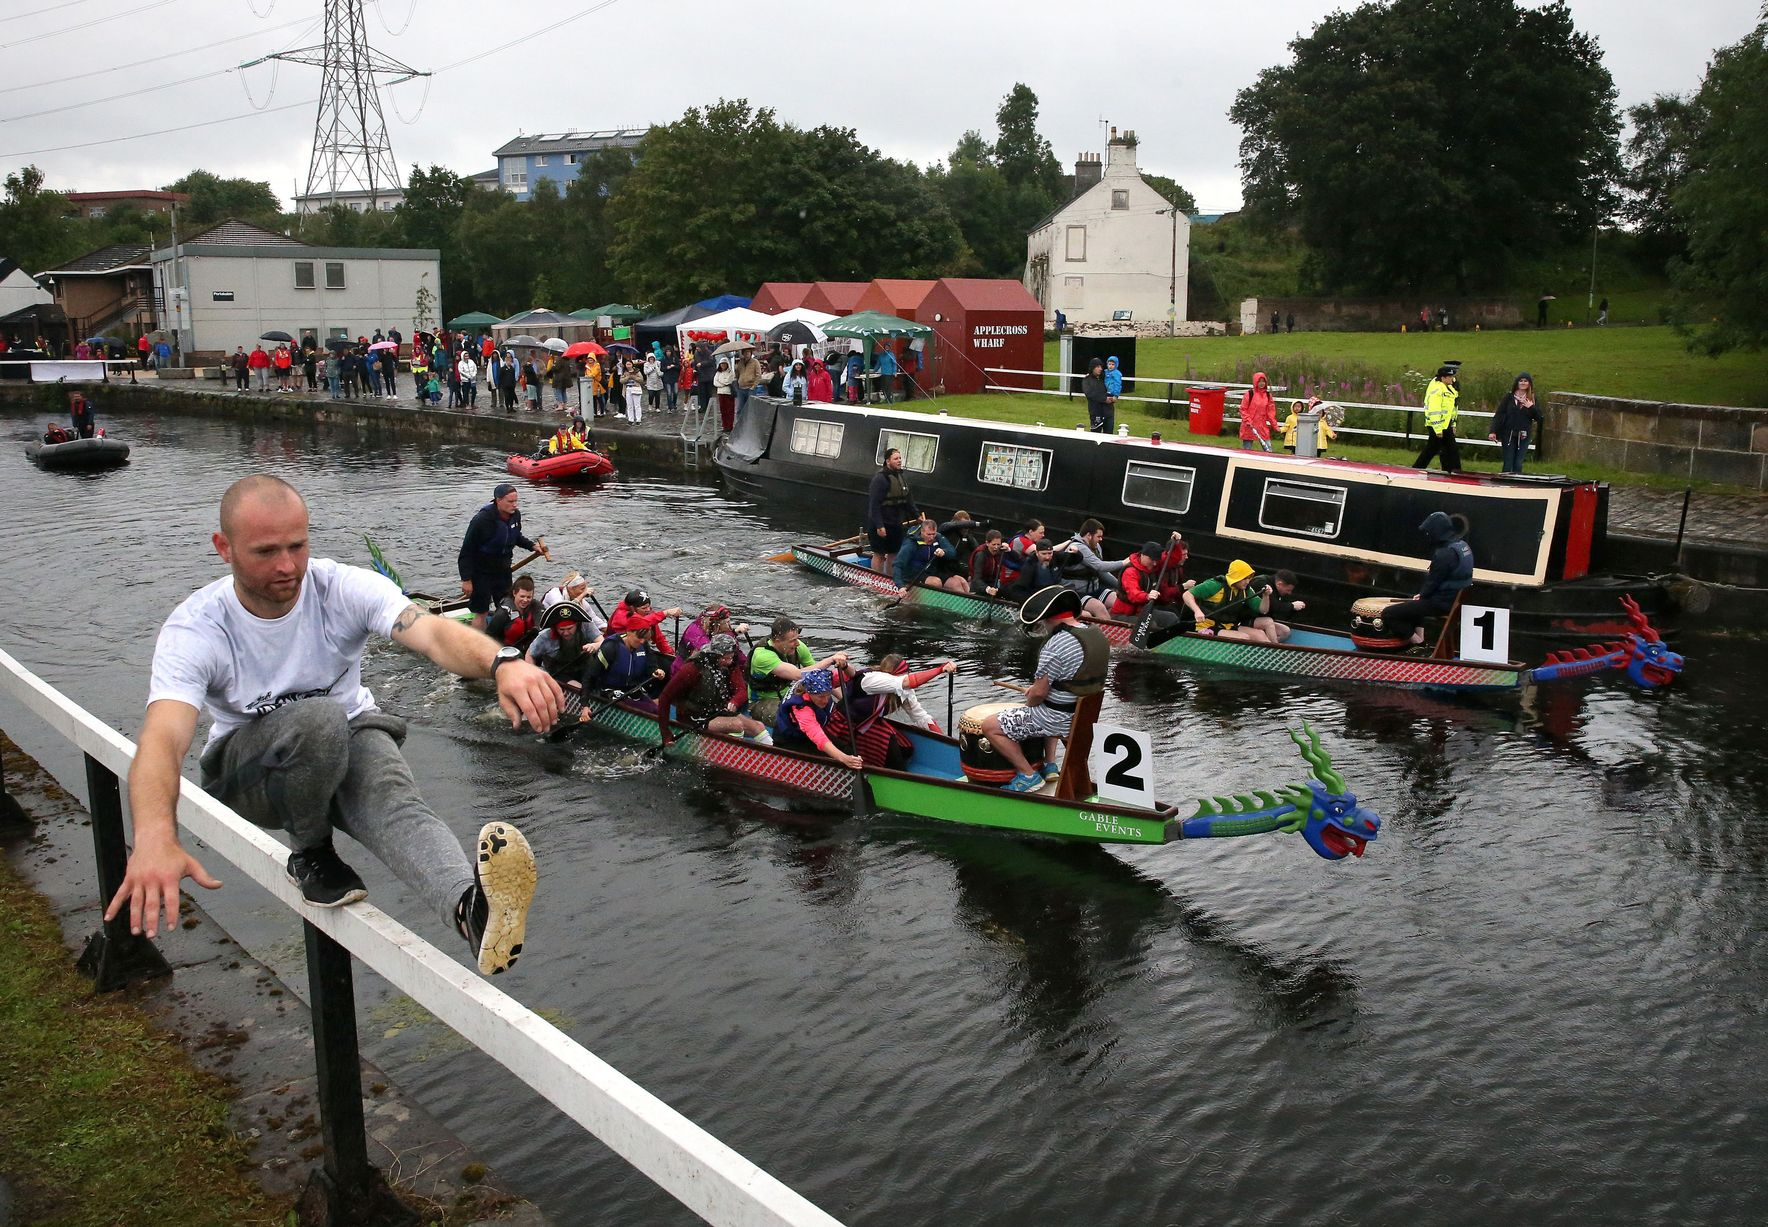 Physio Effect have signed up for the 2018 Dragon Boat Race in Glasgow